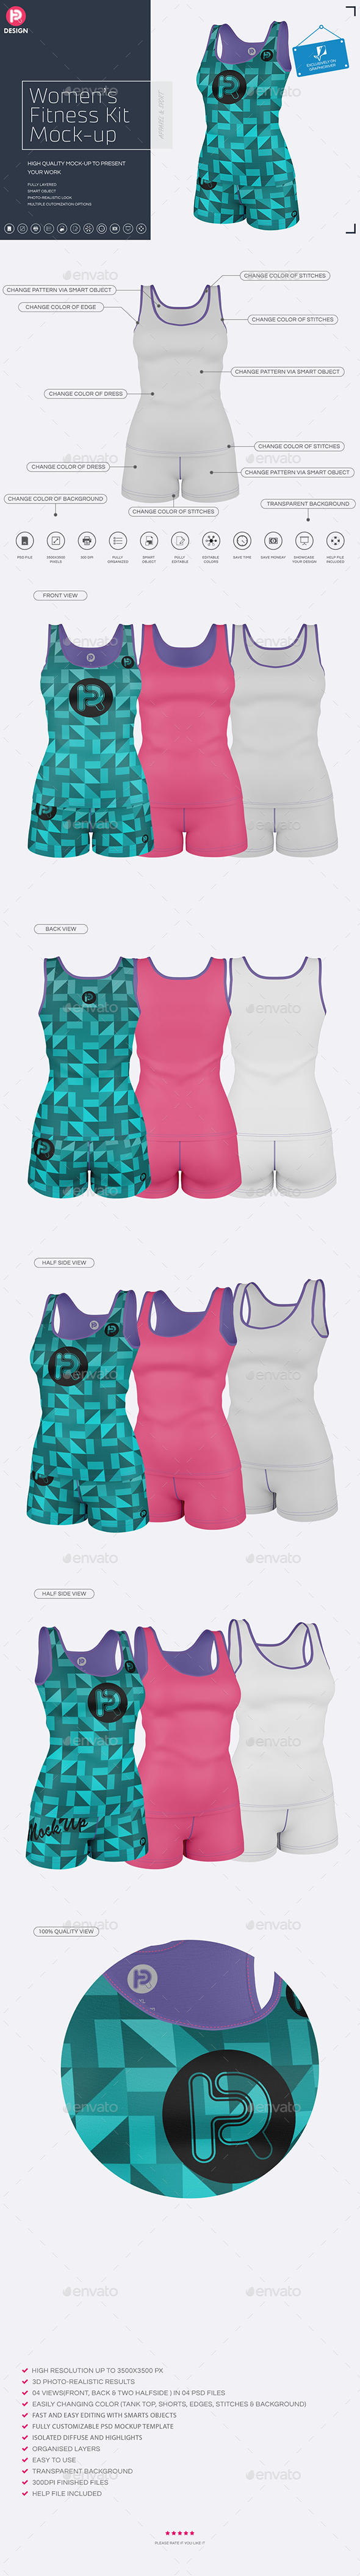 Women's Fitness Kit Mock-Up v3 - Miscellaneous Apparel